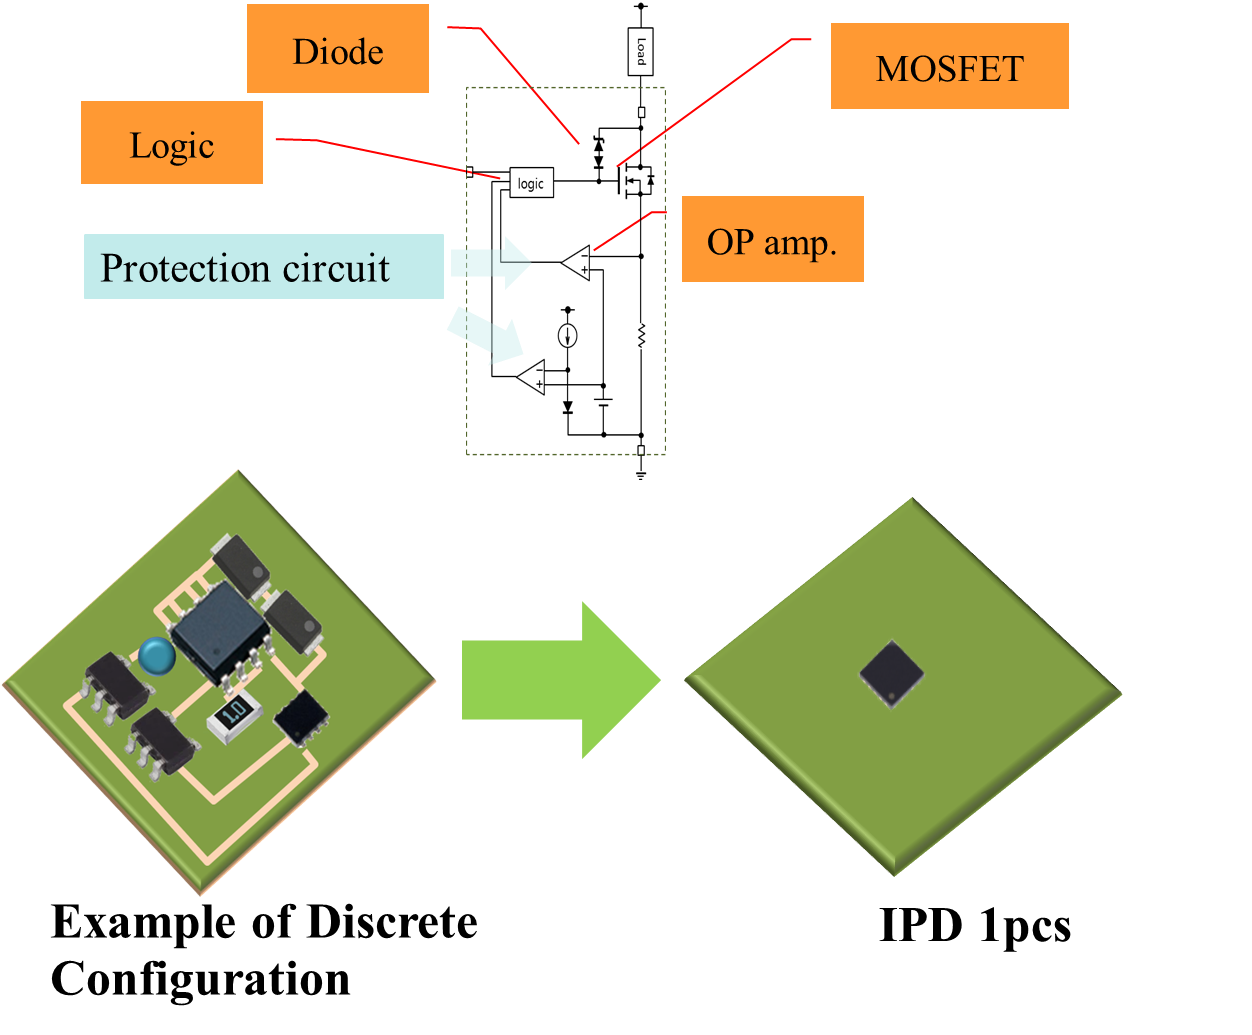 Making these circuits monolithically IPDs using fine BiCD processes